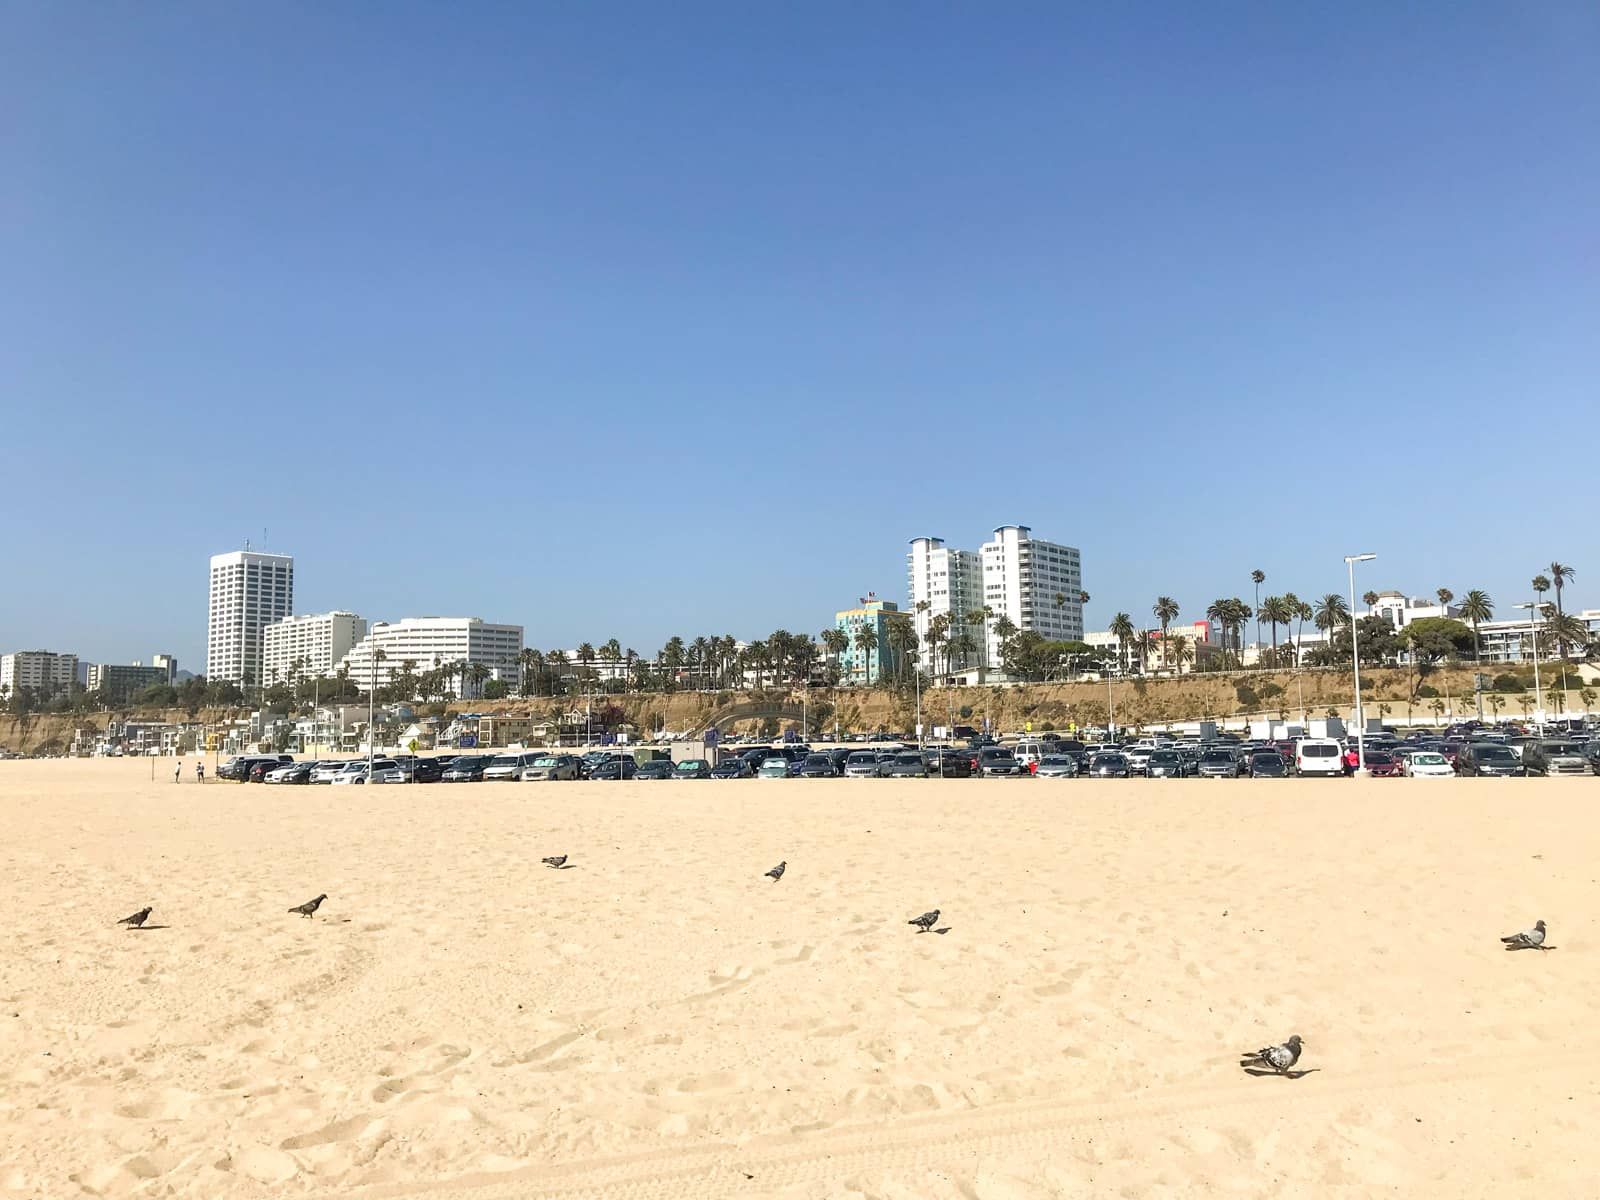 A yellow-sand beach with small pigeons standing on the sand, all spread out. In the distance is the city of Los Angeles, with a parking lot for the beach closer to the foreground. It is a sunny day with clear blue skies